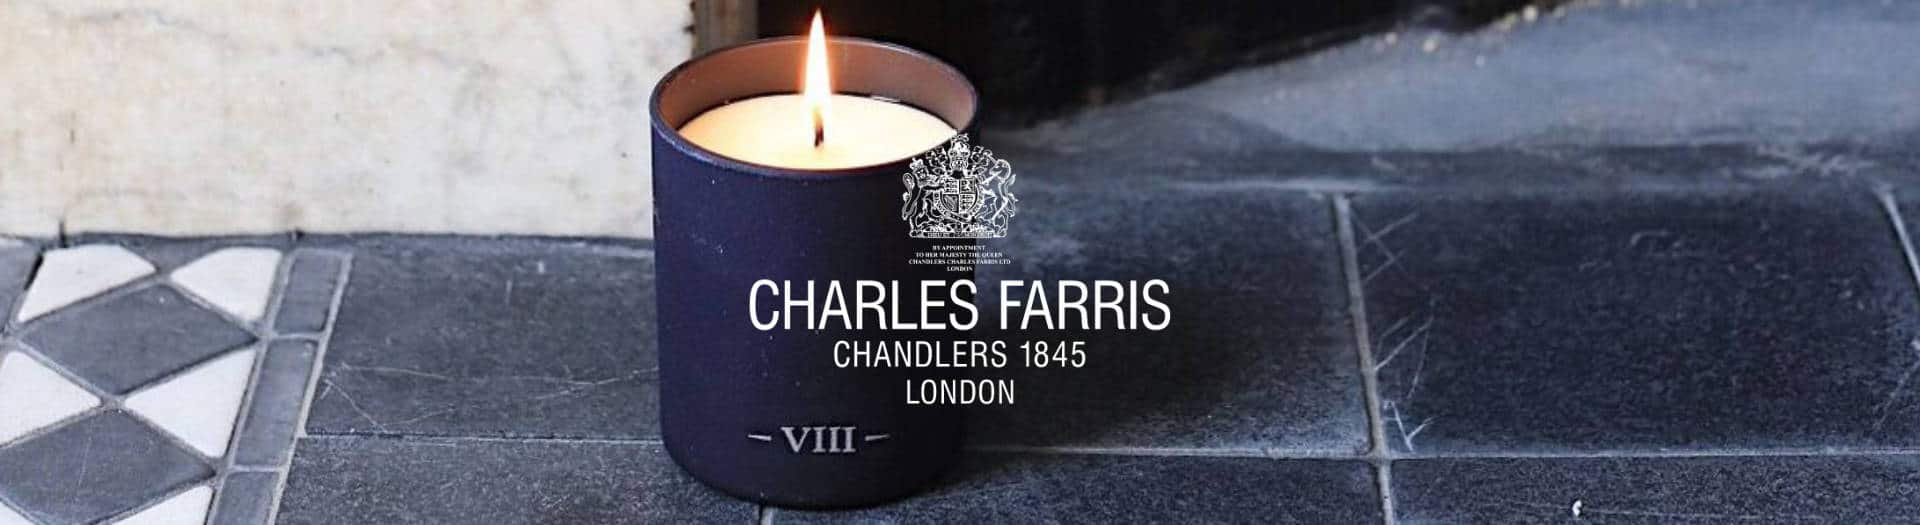 charles farris scented candle1